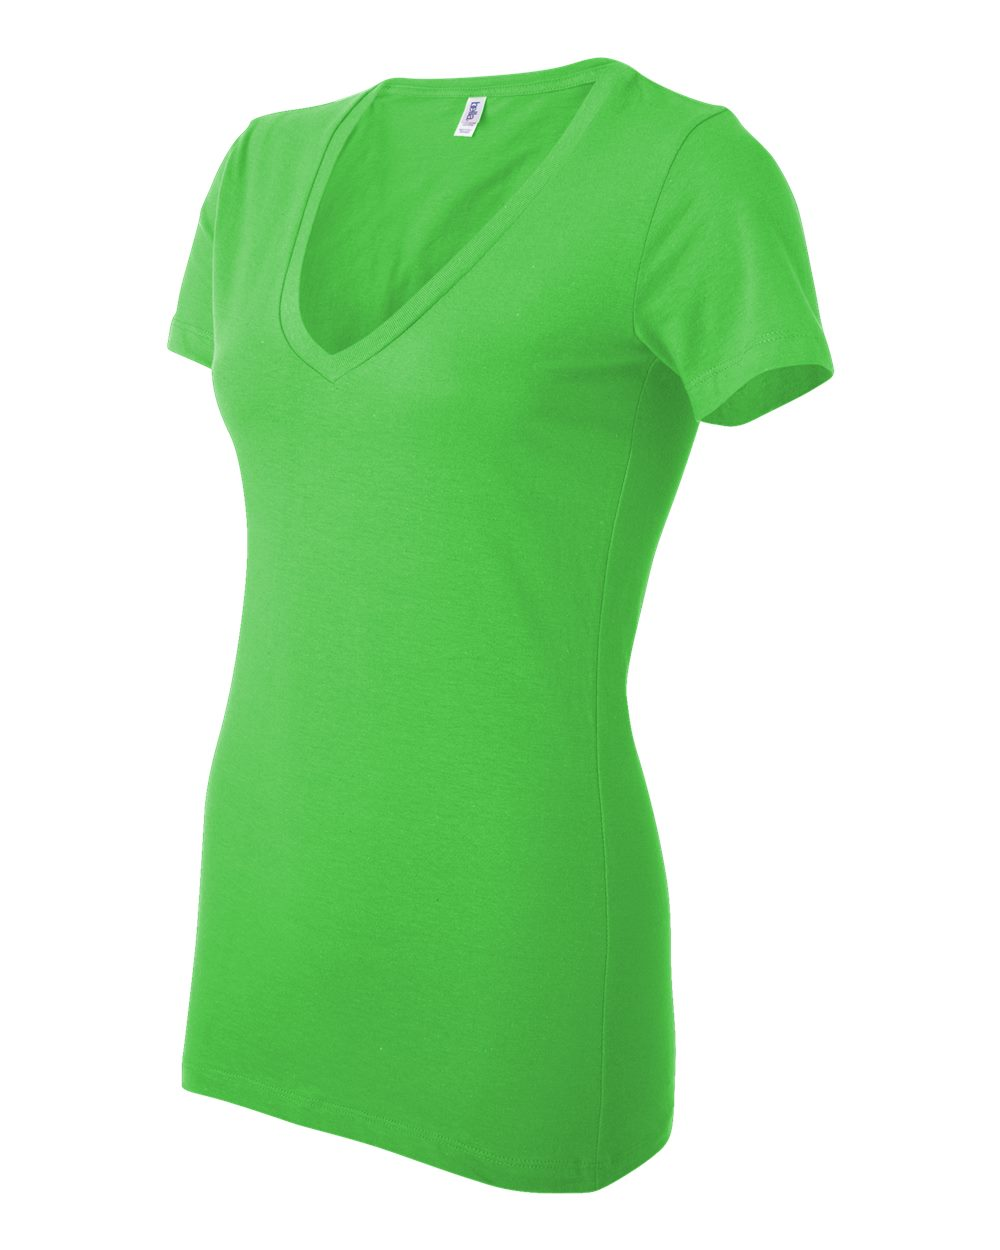 Bella-Canvas-Women-039-s-Jersey-Short-Sleeve-Deep-V-Neck-T-Shirt-B6035-S-2XL thumbnail 42